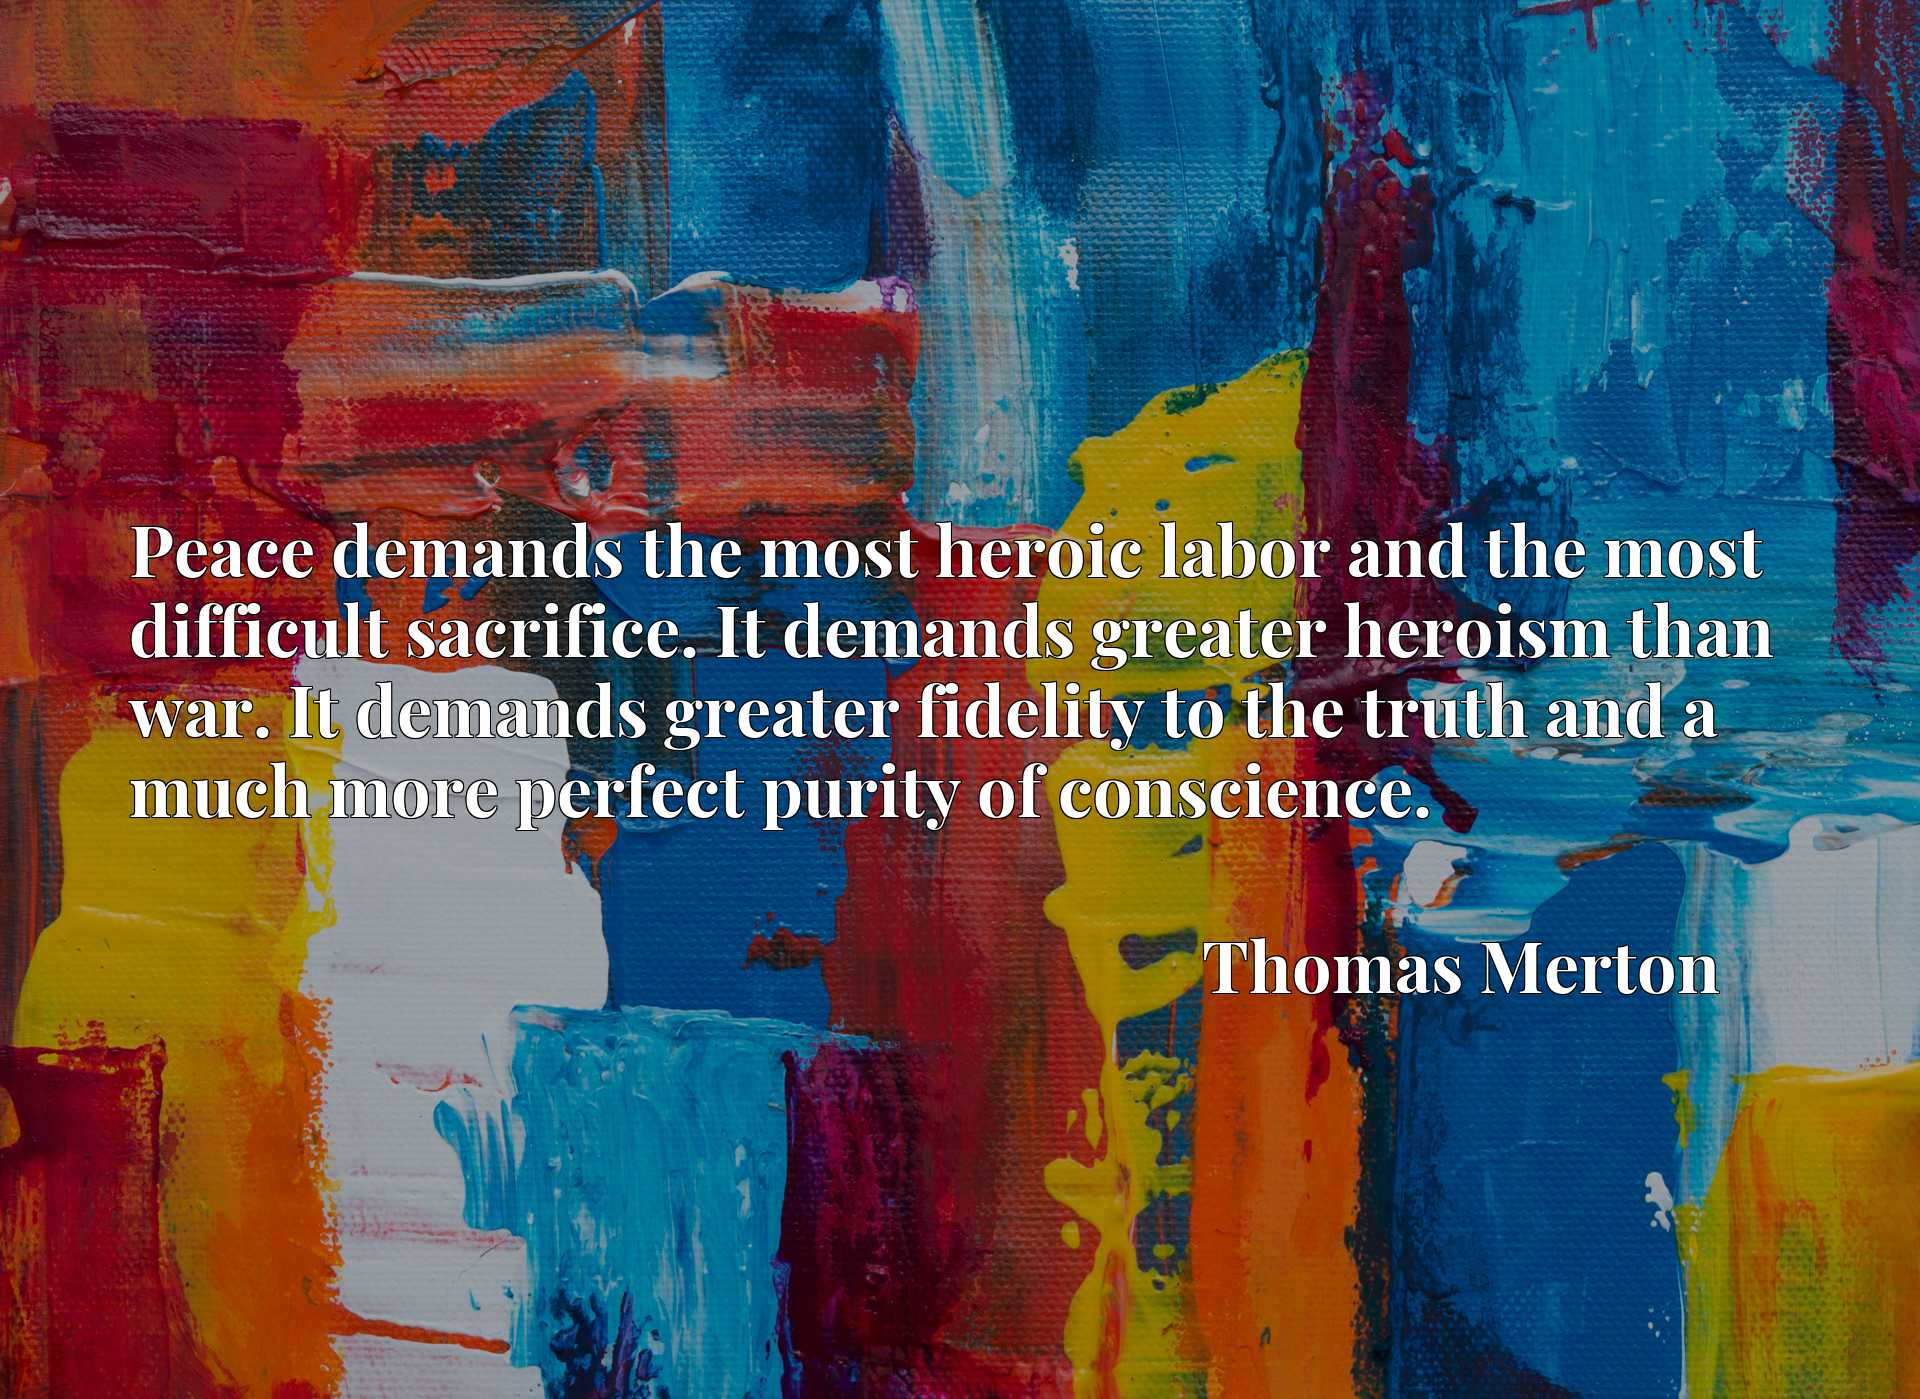 Peace demands the most heroic labor and the most difficult sacrifice. It demands greater heroism than war. It demands greater fidelity to the truth and a much more perfect purity of conscience.